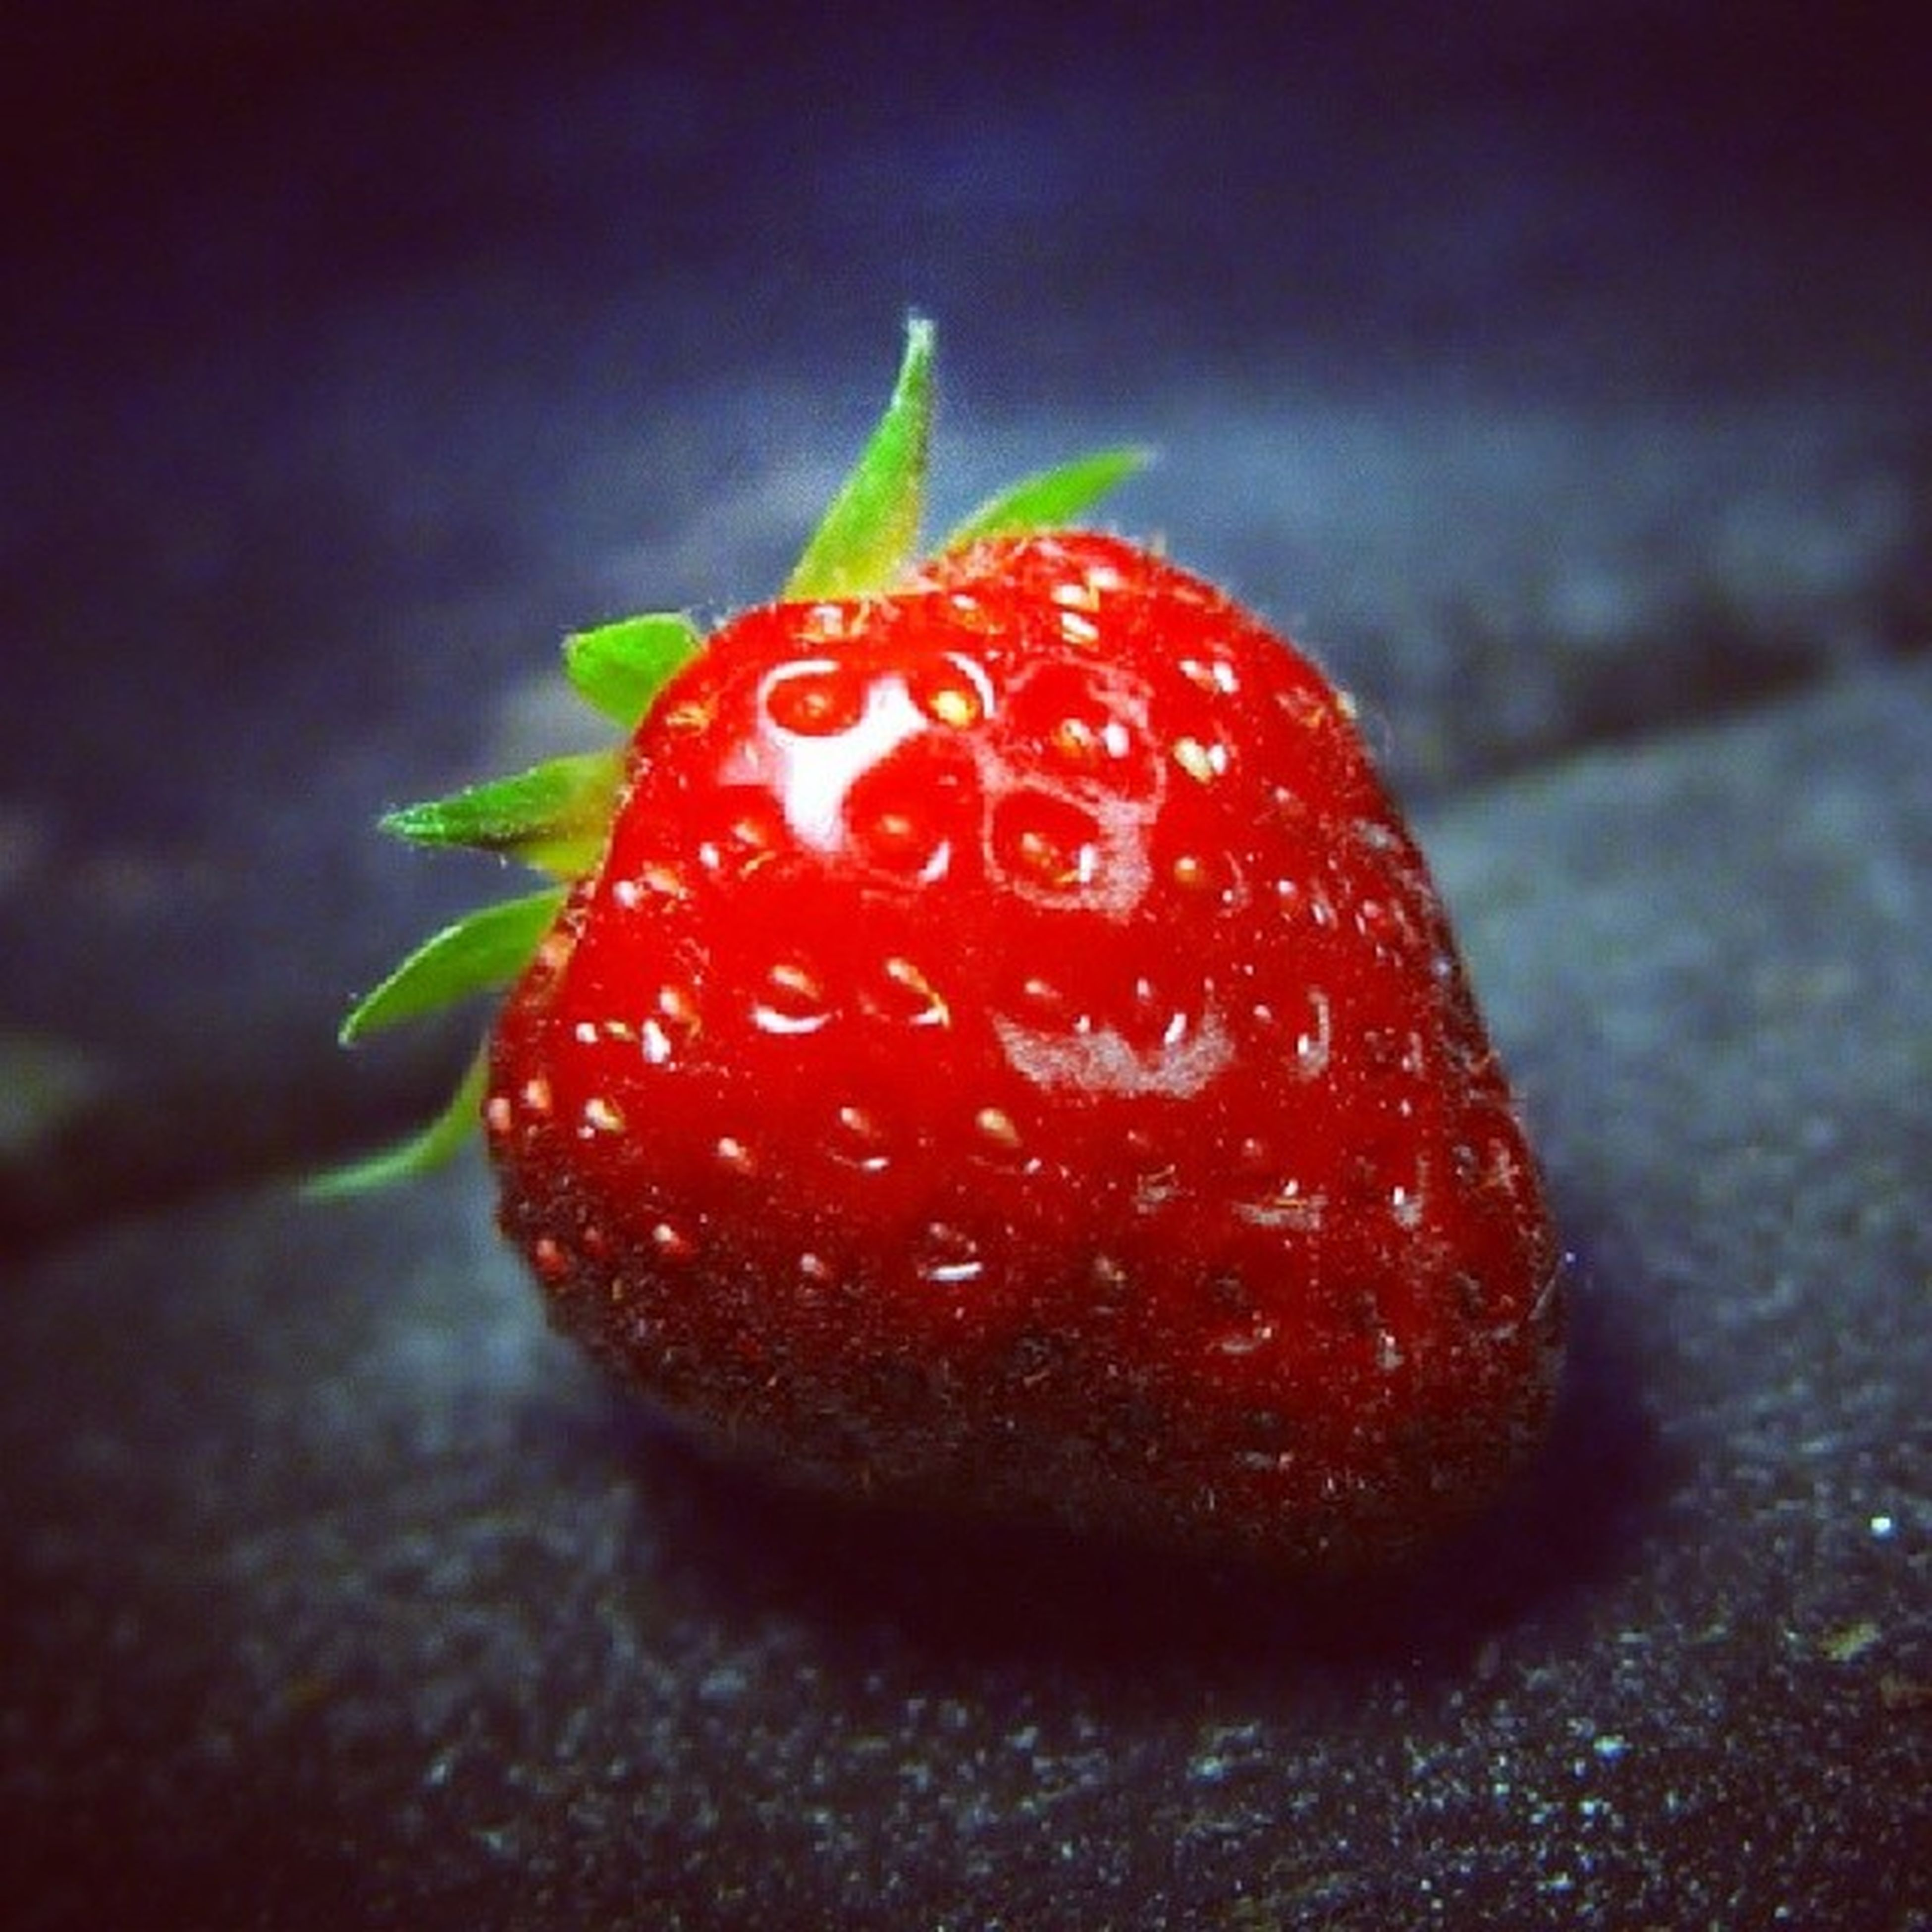 red, food and drink, fruit, food, strawberry, freshness, close-up, healthy eating, ripe, focus on foreground, juicy, berry fruit, selective focus, still life, raspberry, organic, indoors, no people, vibrant color, berry